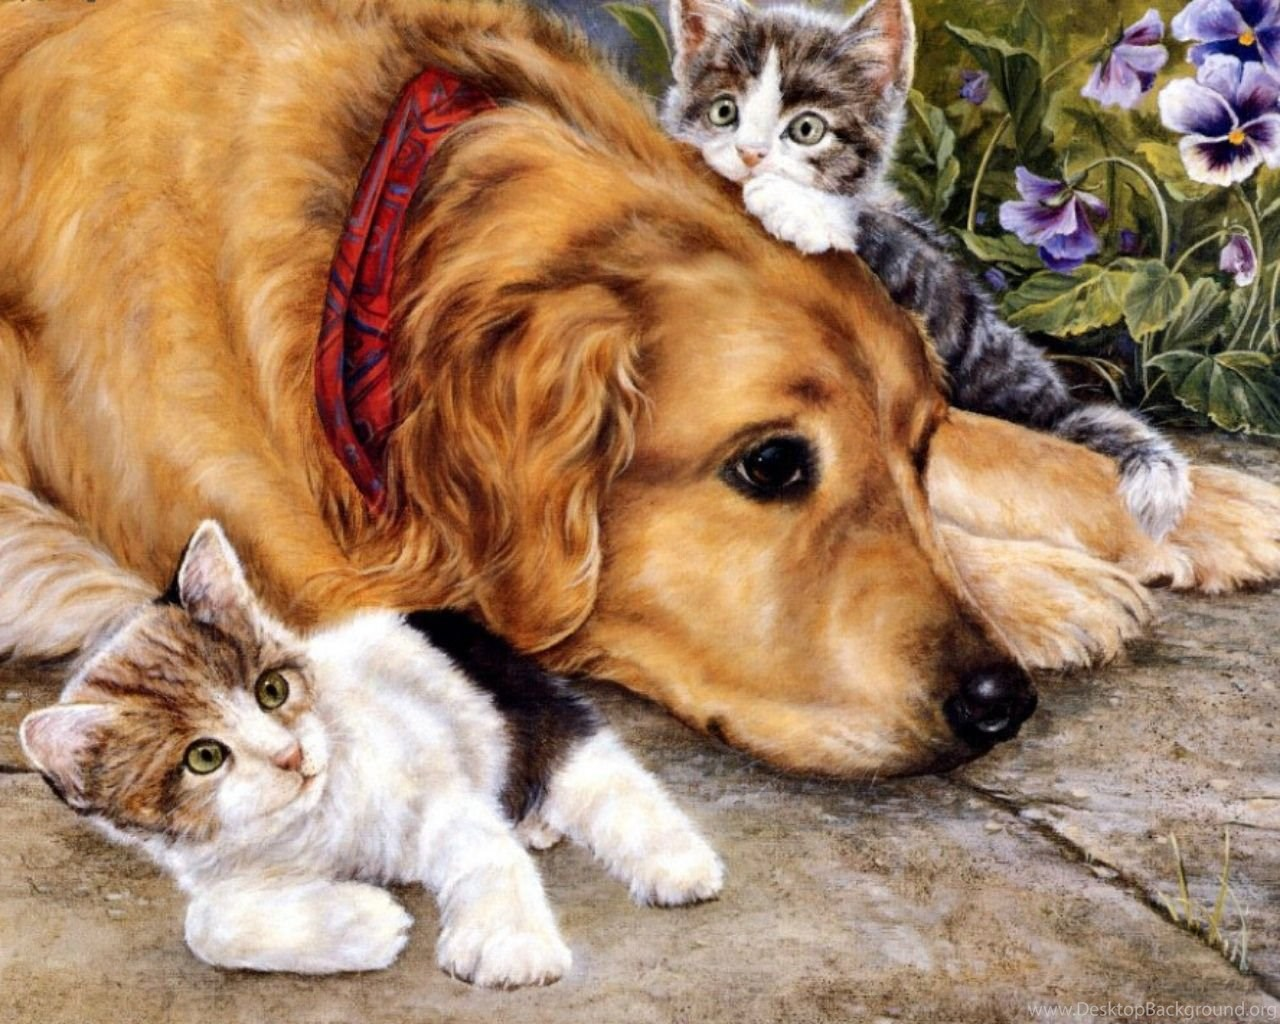 Cats Cats Dog Animals Cat Painting Pet Free Download Wallpapers Desktop Background